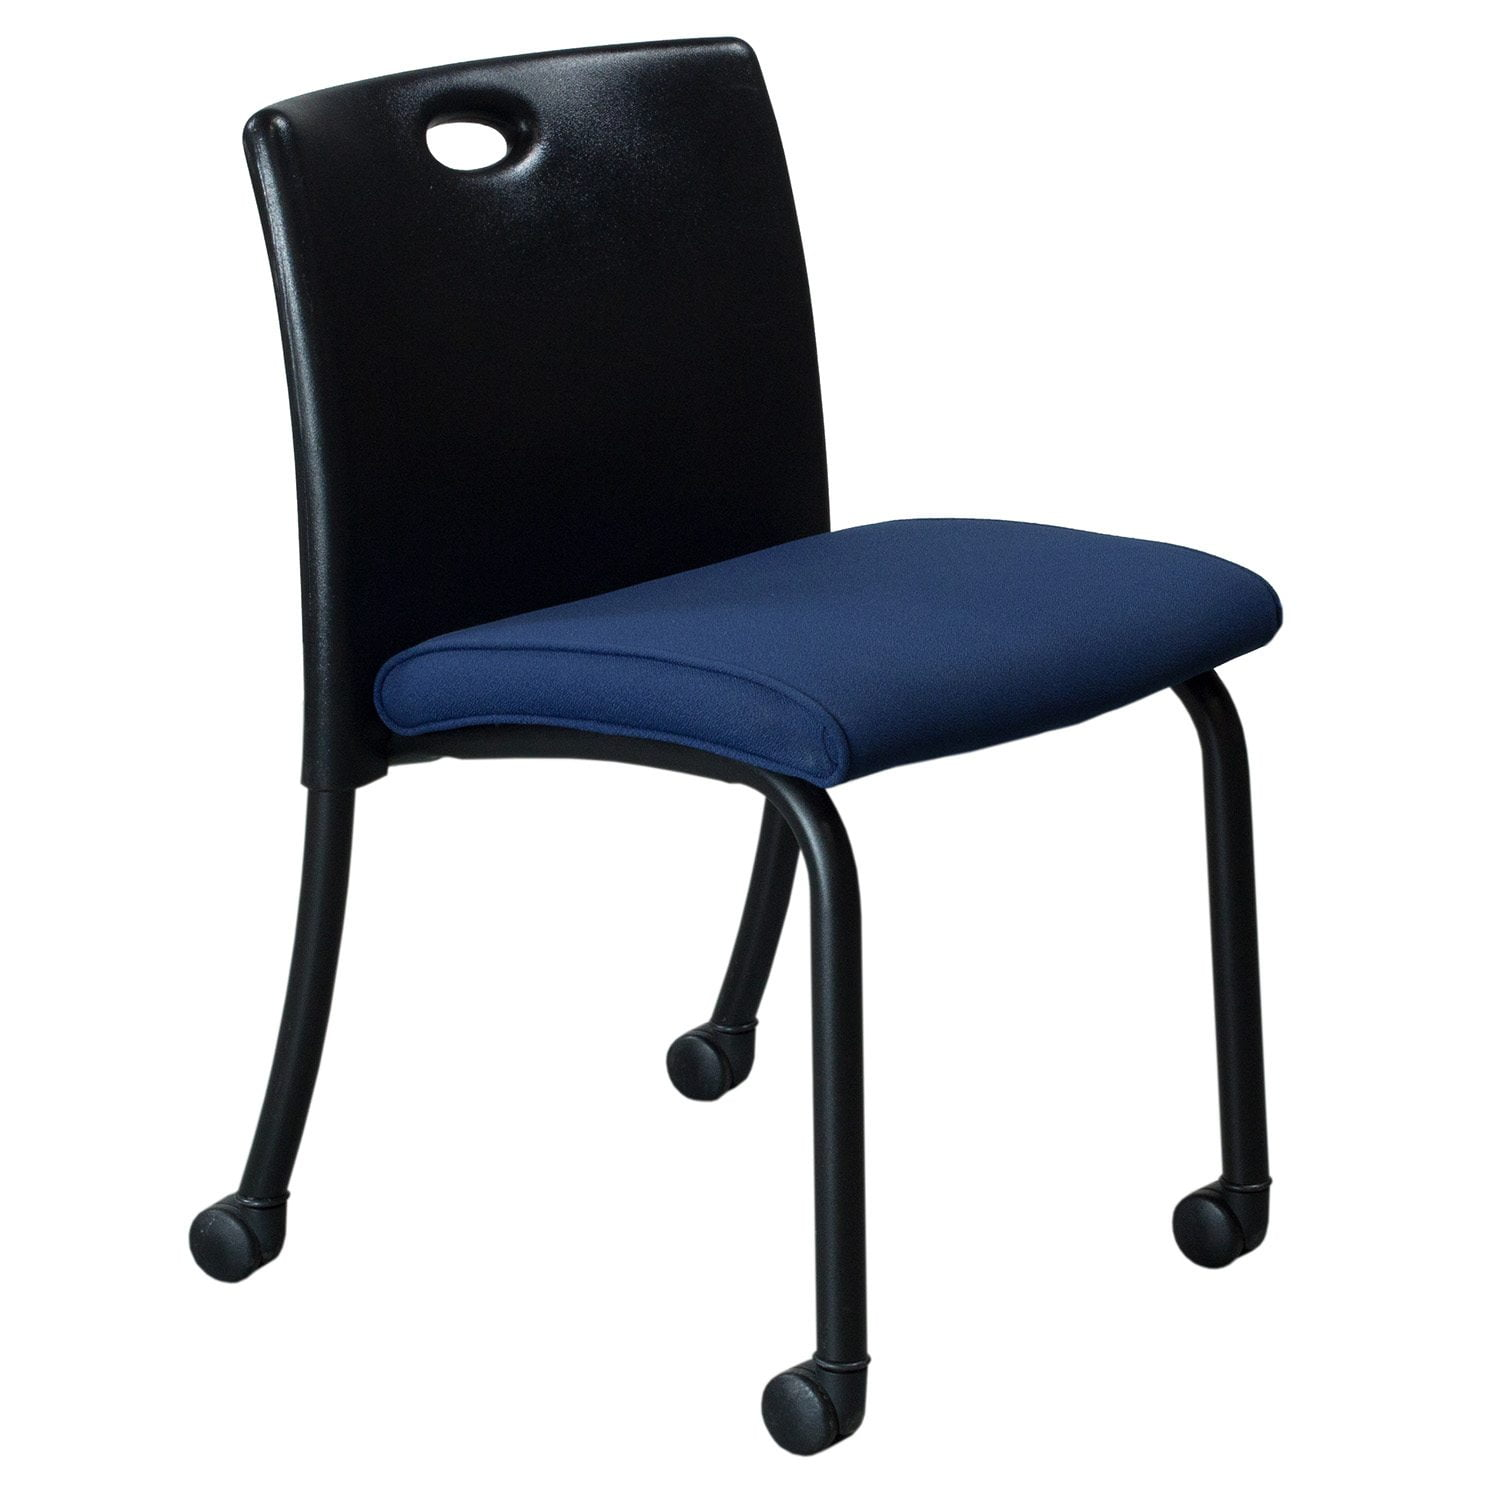 Steelcase Chairs Steelcase Sweeper Used Mobile Guest Chair Blue National